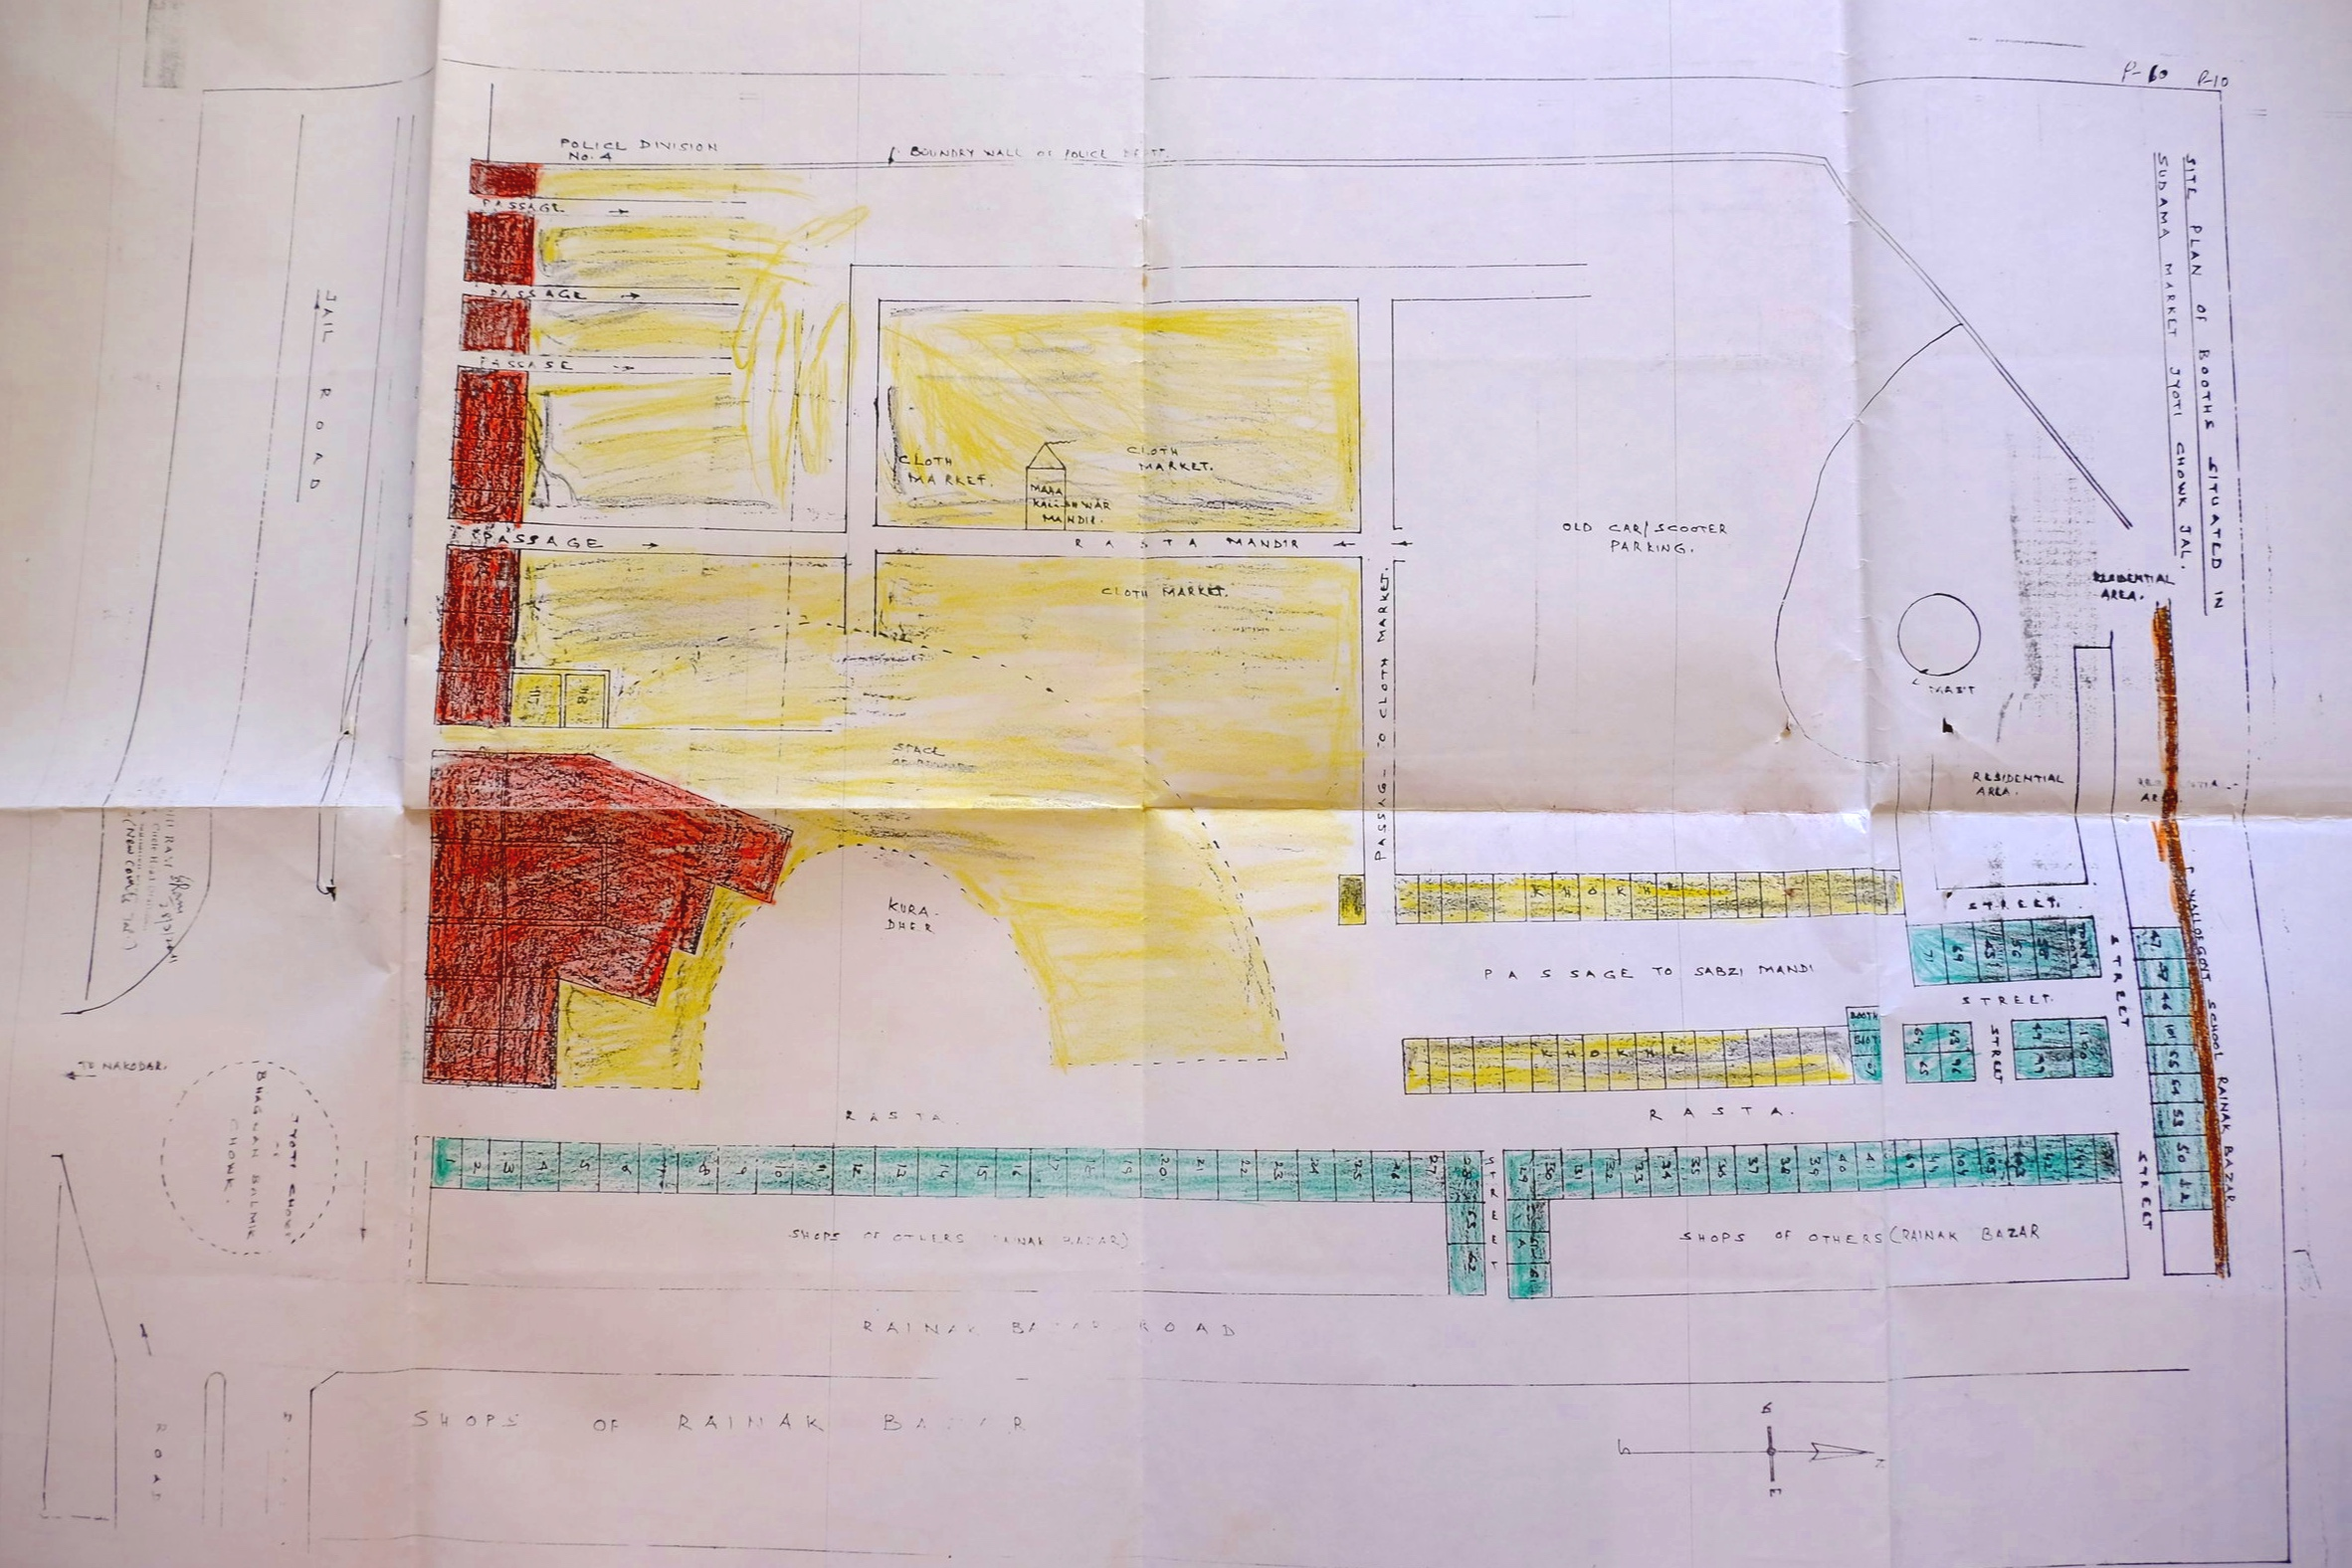 Present Layout plan of Sudama and sabji market adjoining Jyoti Chowk prepared by the municipality. The various vendor shops and the Kali Mandir are clearly marked out.